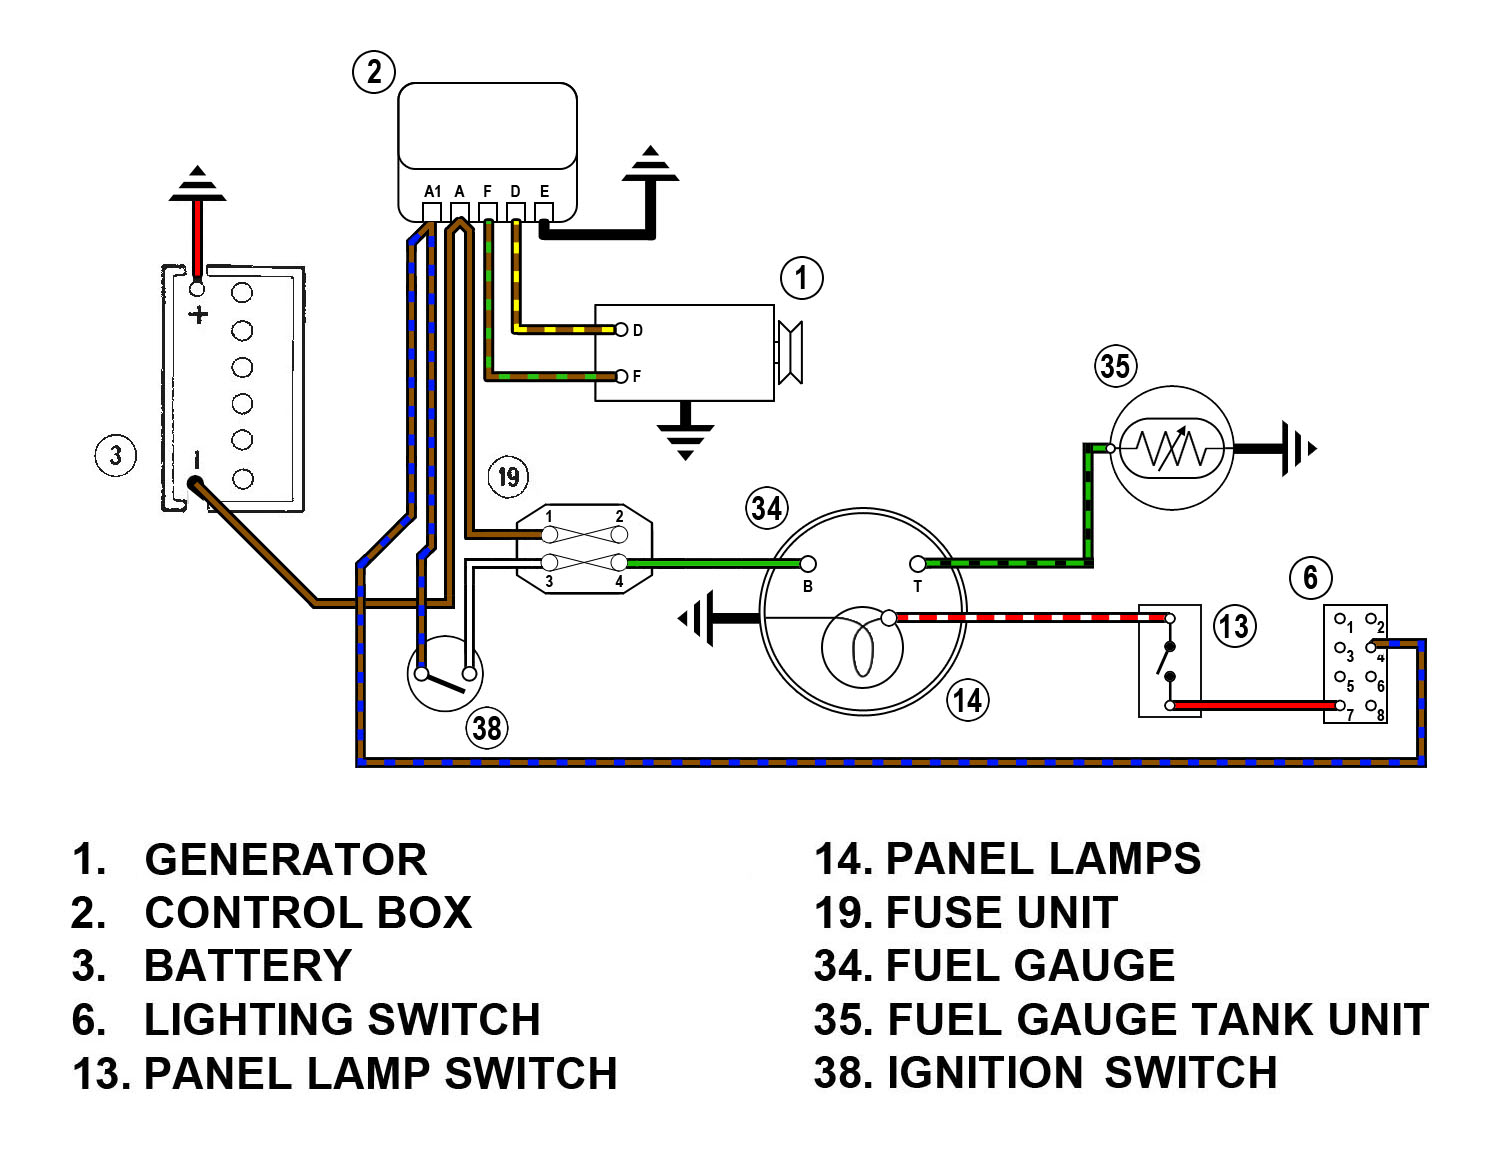 1984 Ford F 150 Wiring Diagram Regulator Will Be A 1985 F150 Fuel Gauge Detailed Schematics Rh Jvpacks Com Radio